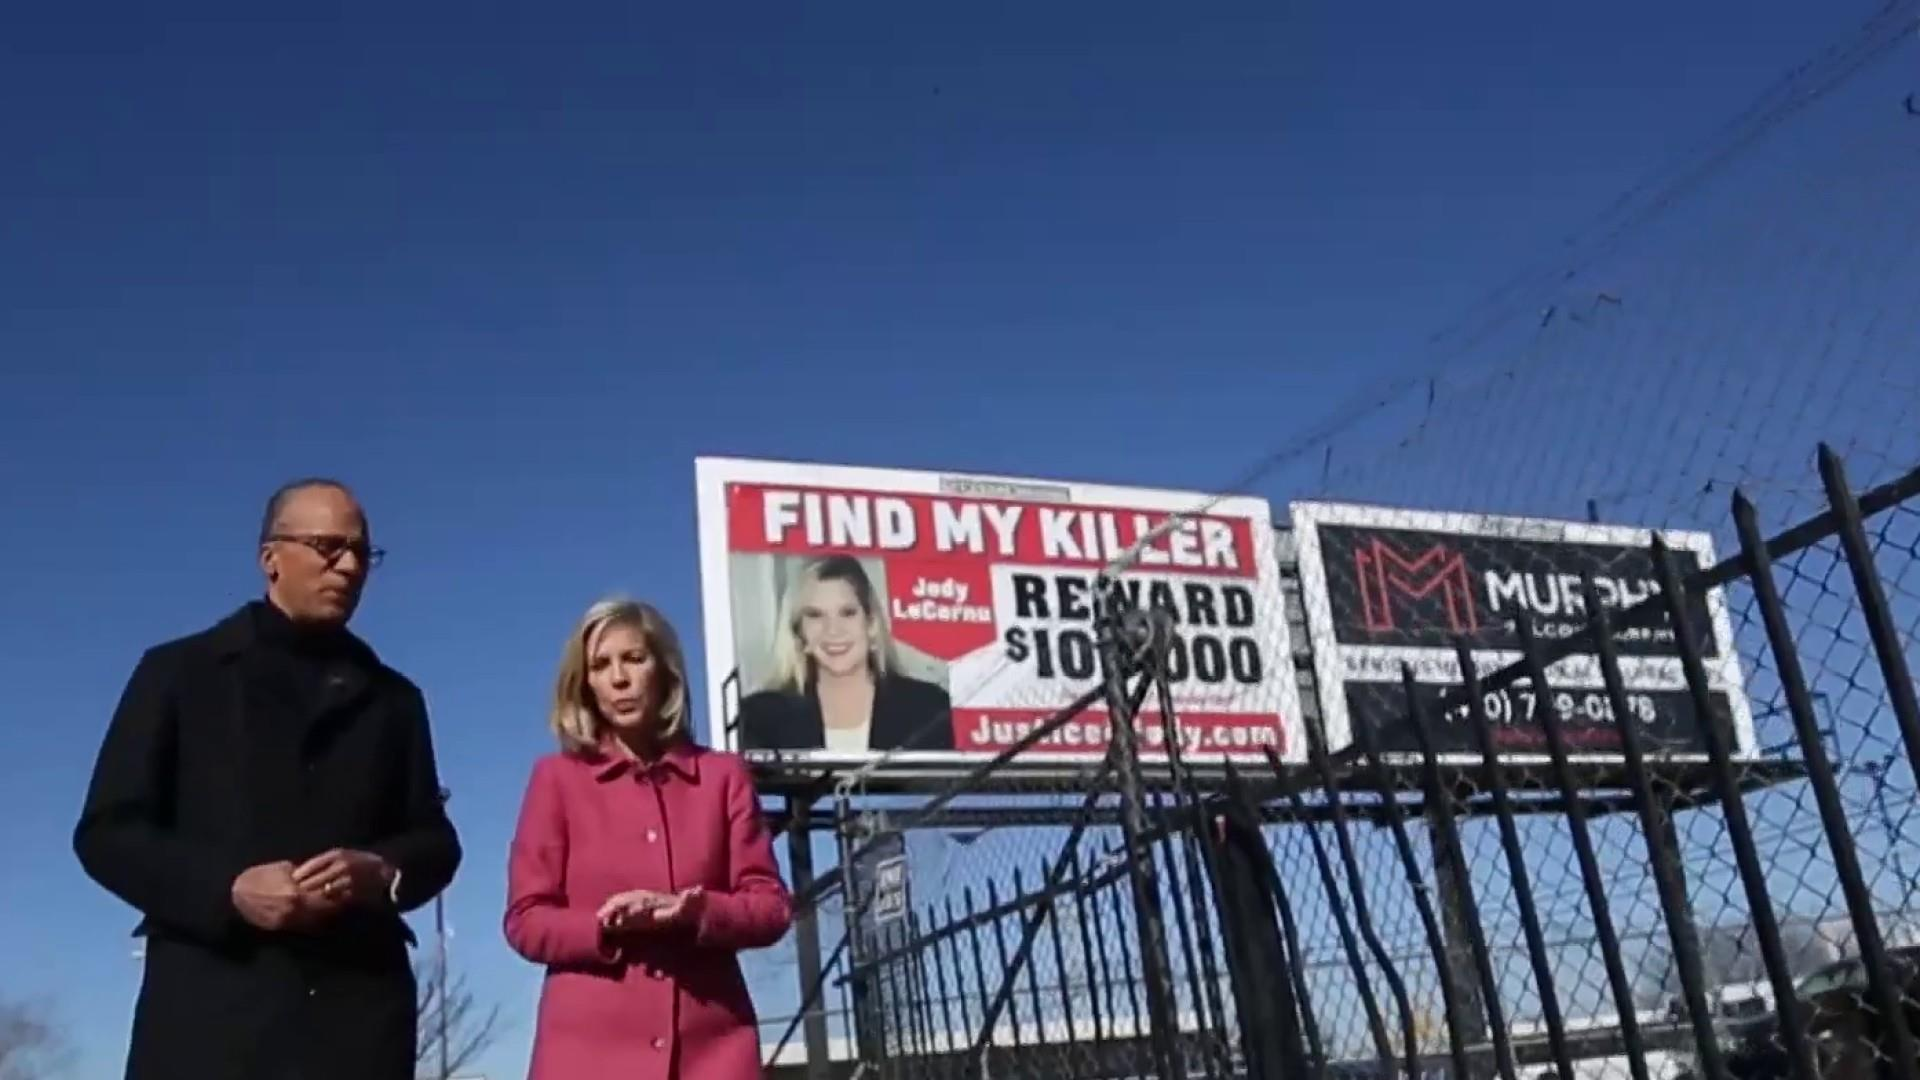 Three billboards in Baltimore: Woman hunts for twin's killer